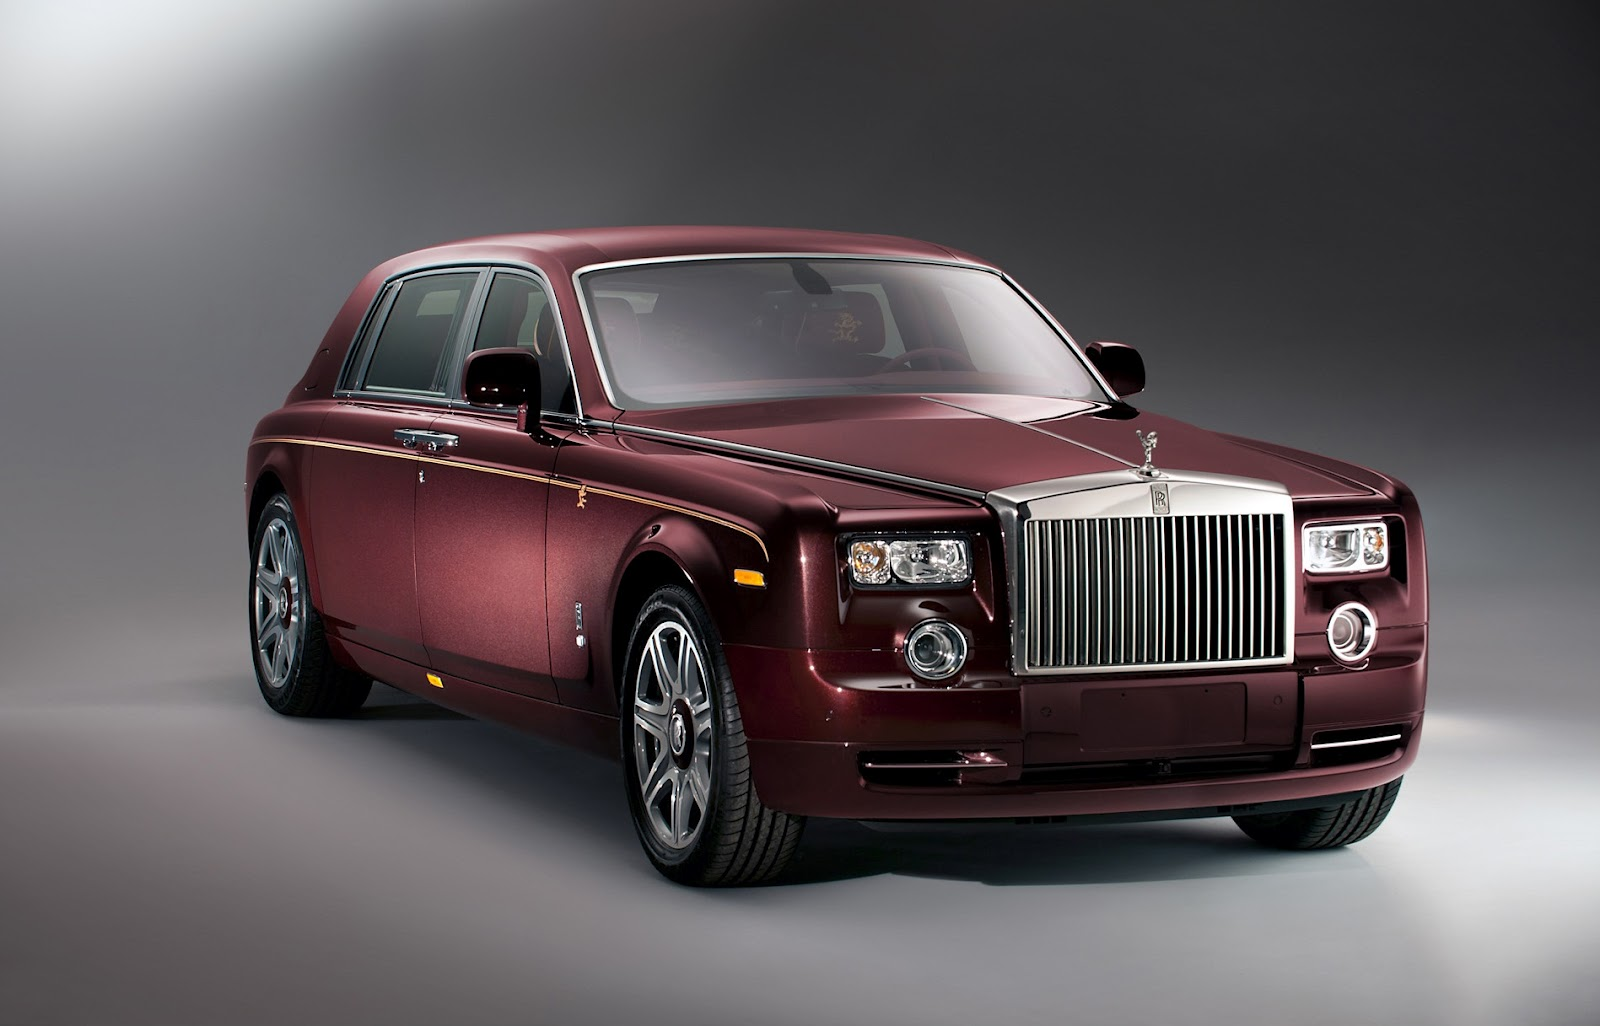 2012 rolls royce phantom year of the dragon colletion news hot car. Black Bedroom Furniture Sets. Home Design Ideas